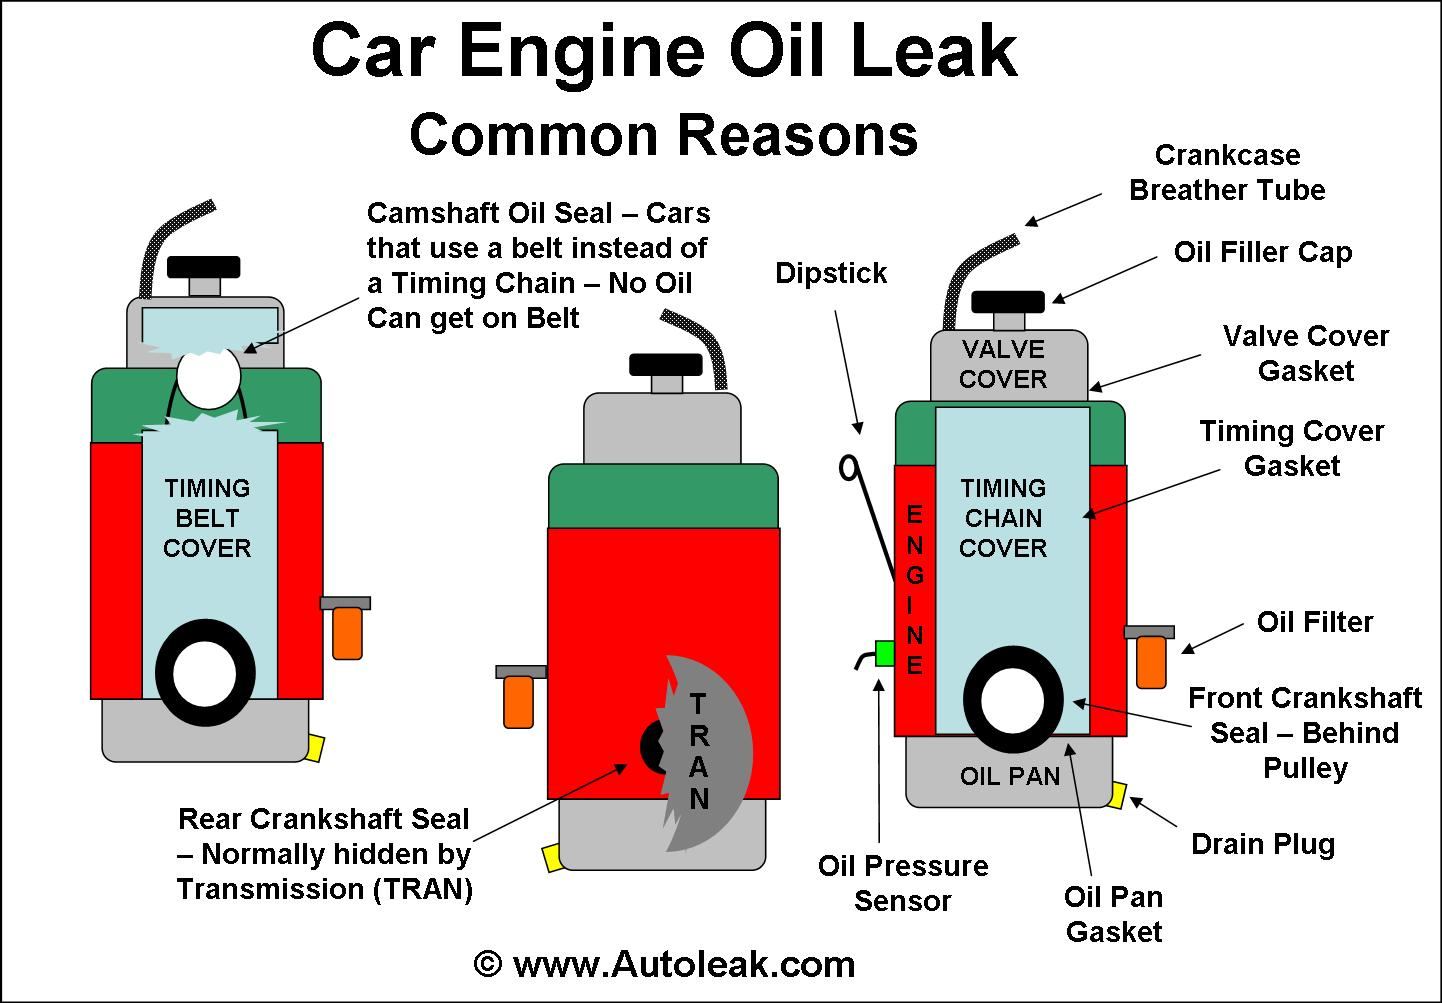 Fix Oil Leak Car